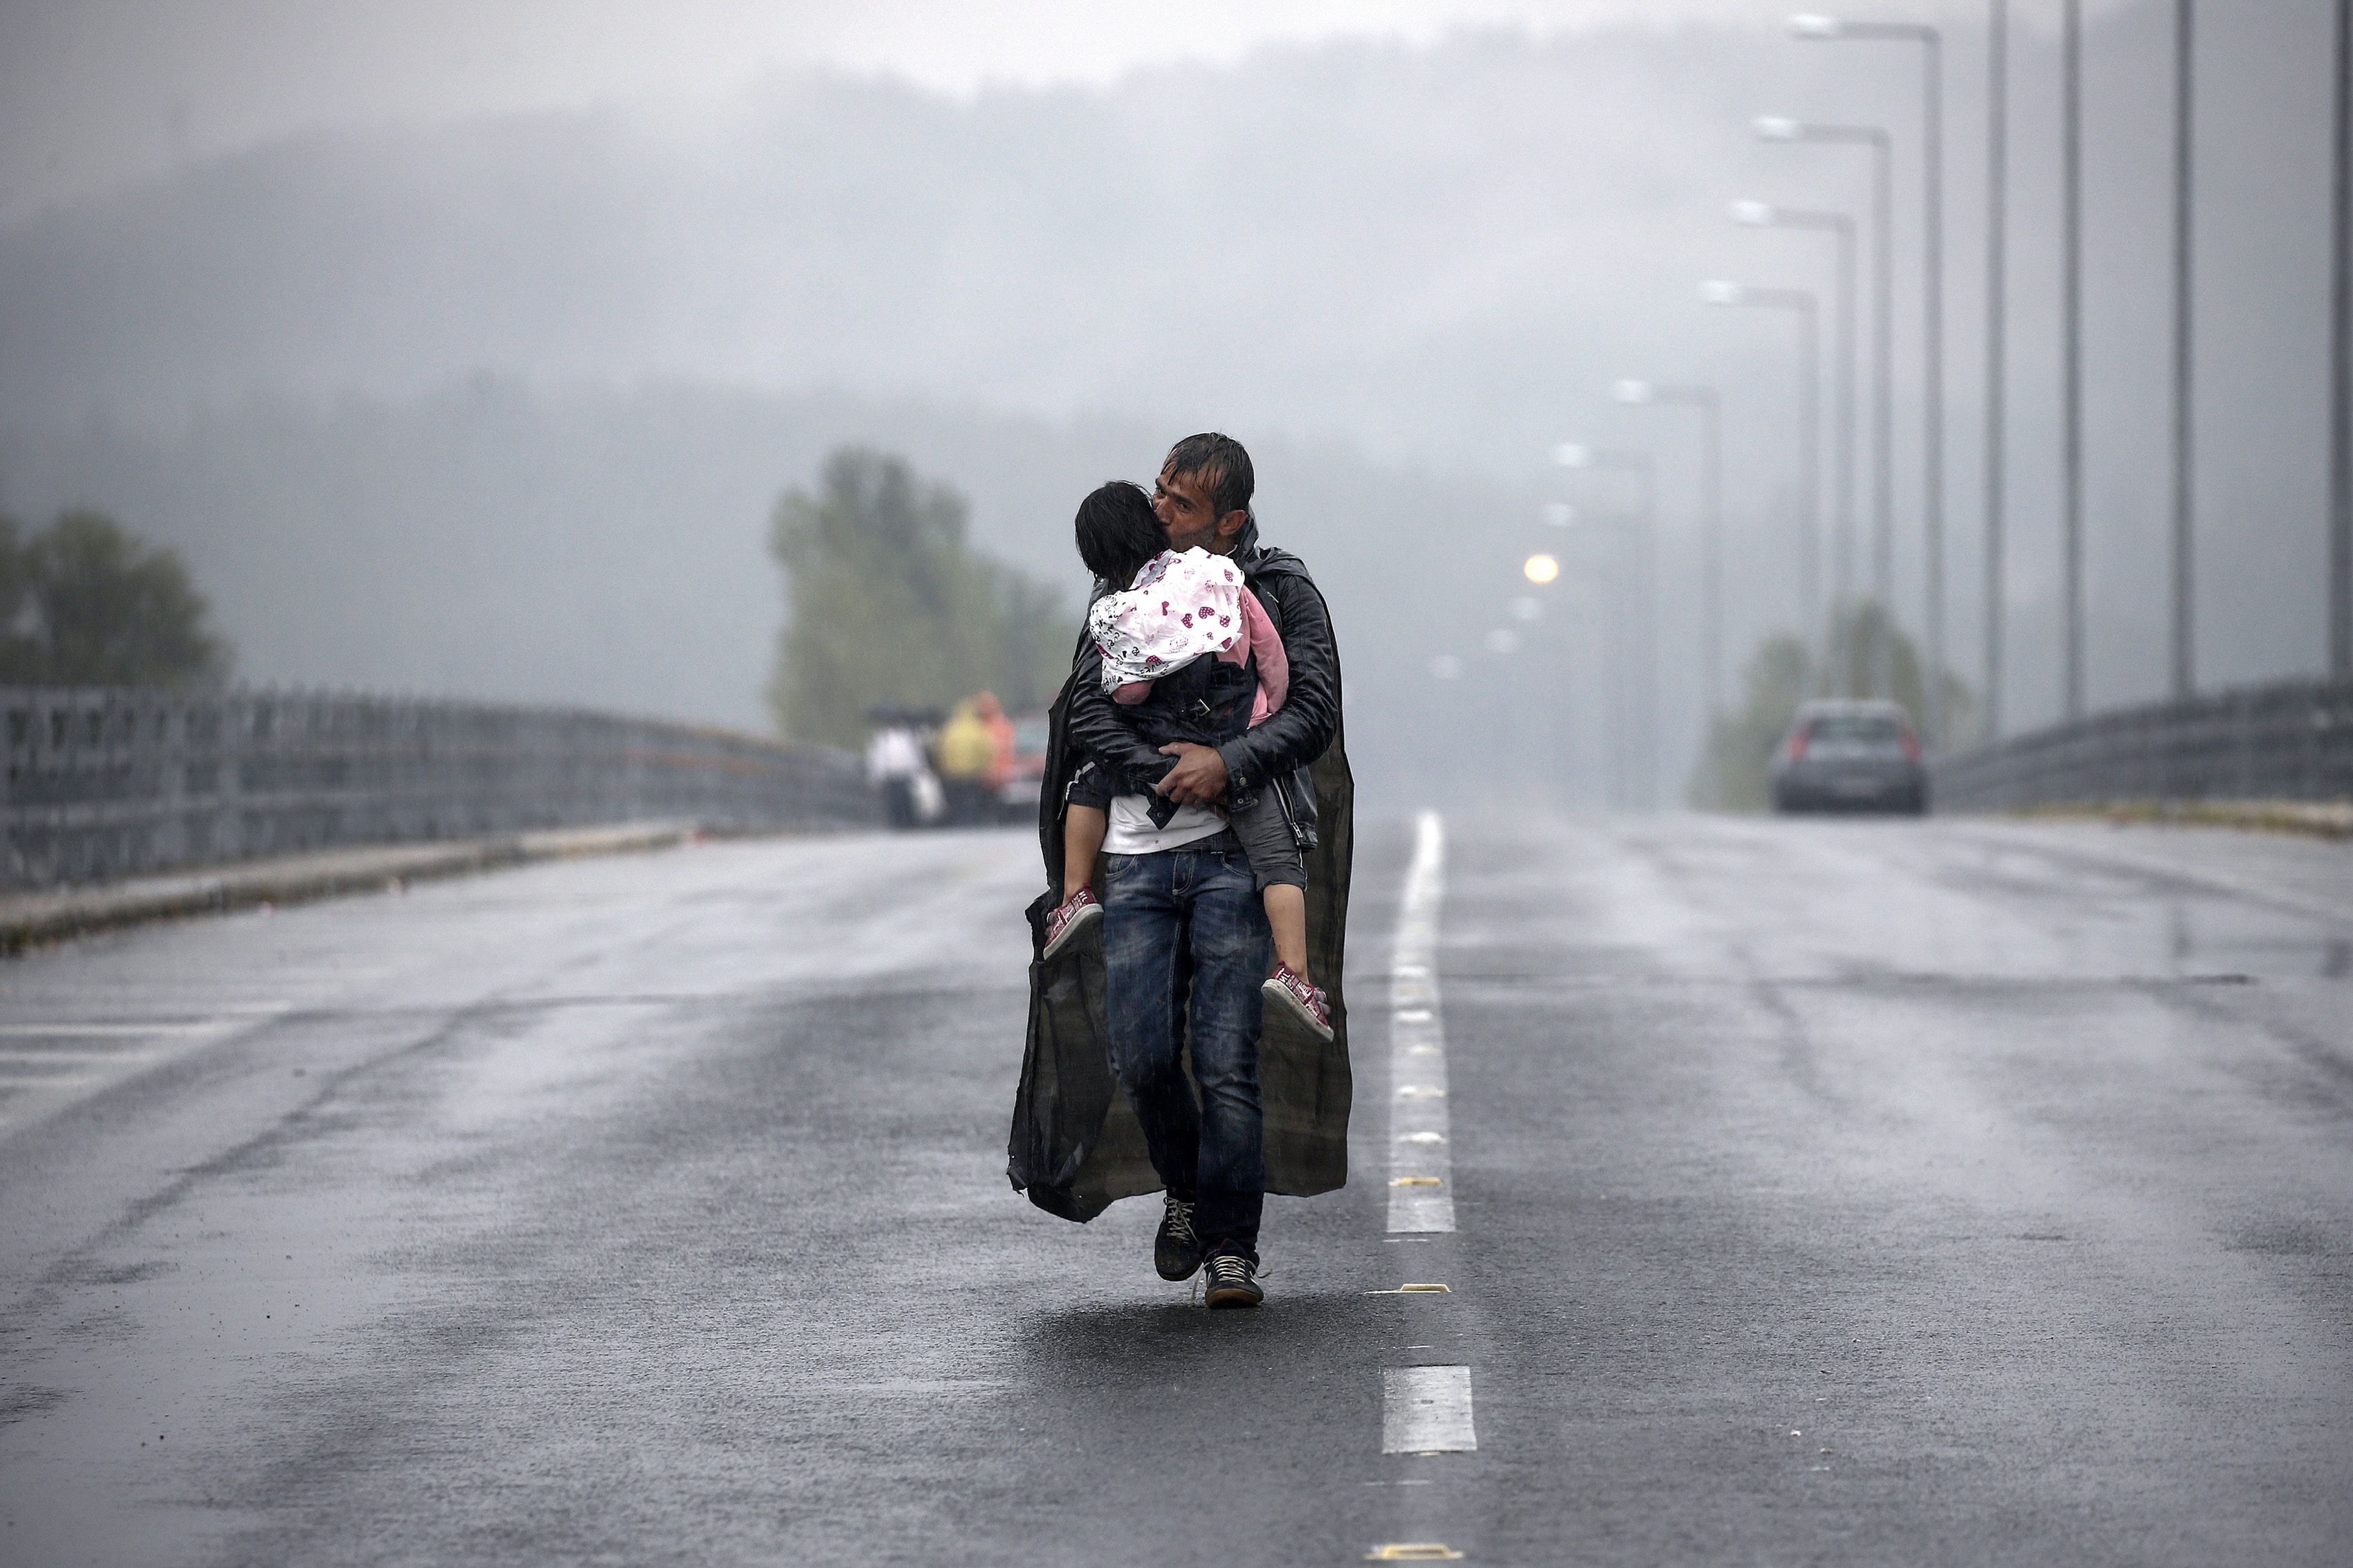 A Syrian refugee kisses his daughter as he walked for hours through a rainstorm to reach Greece's border with FYRO-Macedonia, near the Greek village of Idomeni, September 10, 2015. Thousands of refugees and migrants, including many families with young children, have been left soaked after spending the night sleeping in the open in torrential rain on the Greek- FYRO Macedonian border. About 7,000 people waited in the mud at an open field near the northern Greek village of Idomeni to cross the border, with more arriving in trains, buses and taxis, as FYRO Macedonian police has imposed rationing in the flow of refugees.